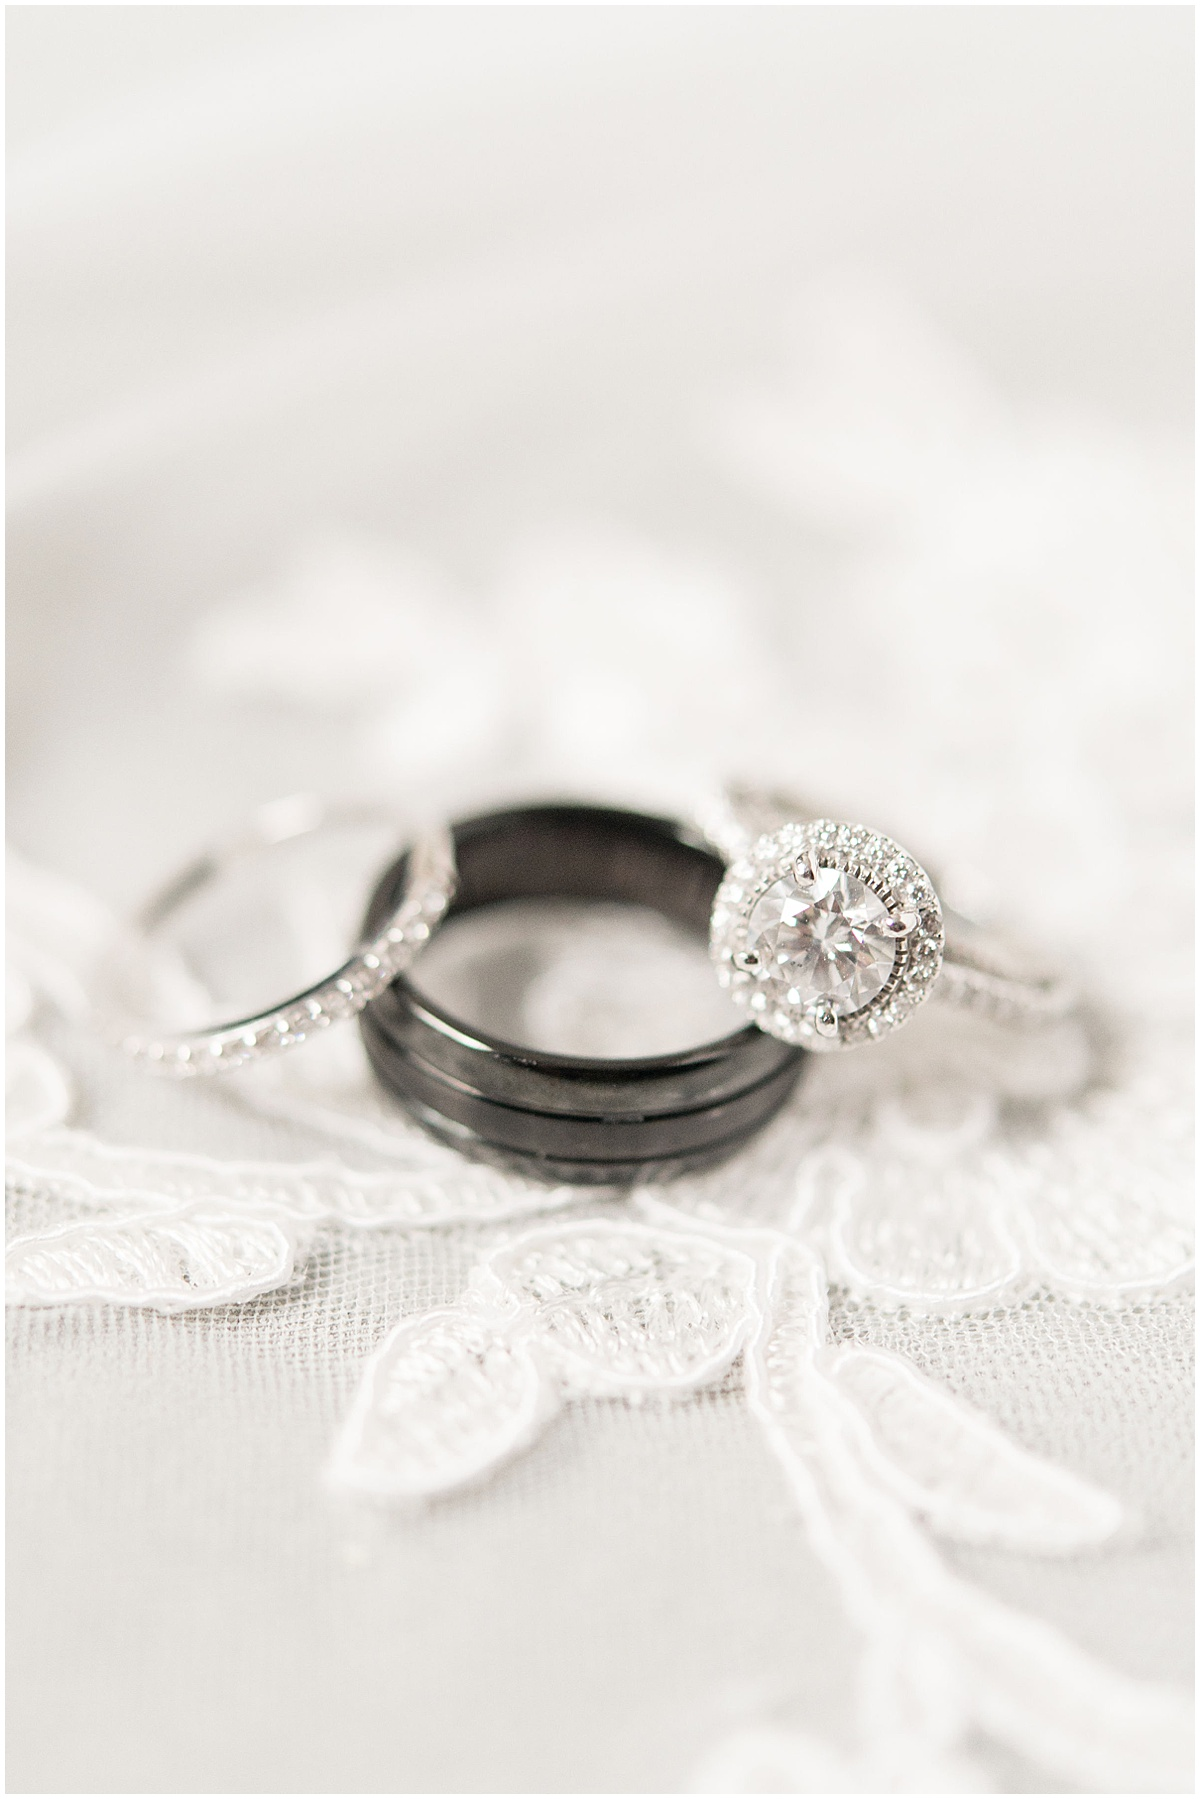 Wedding details for wedding at The Lighthouse Restaurant in Cedar Lake, Indiana by Victoria Rayburn Photography